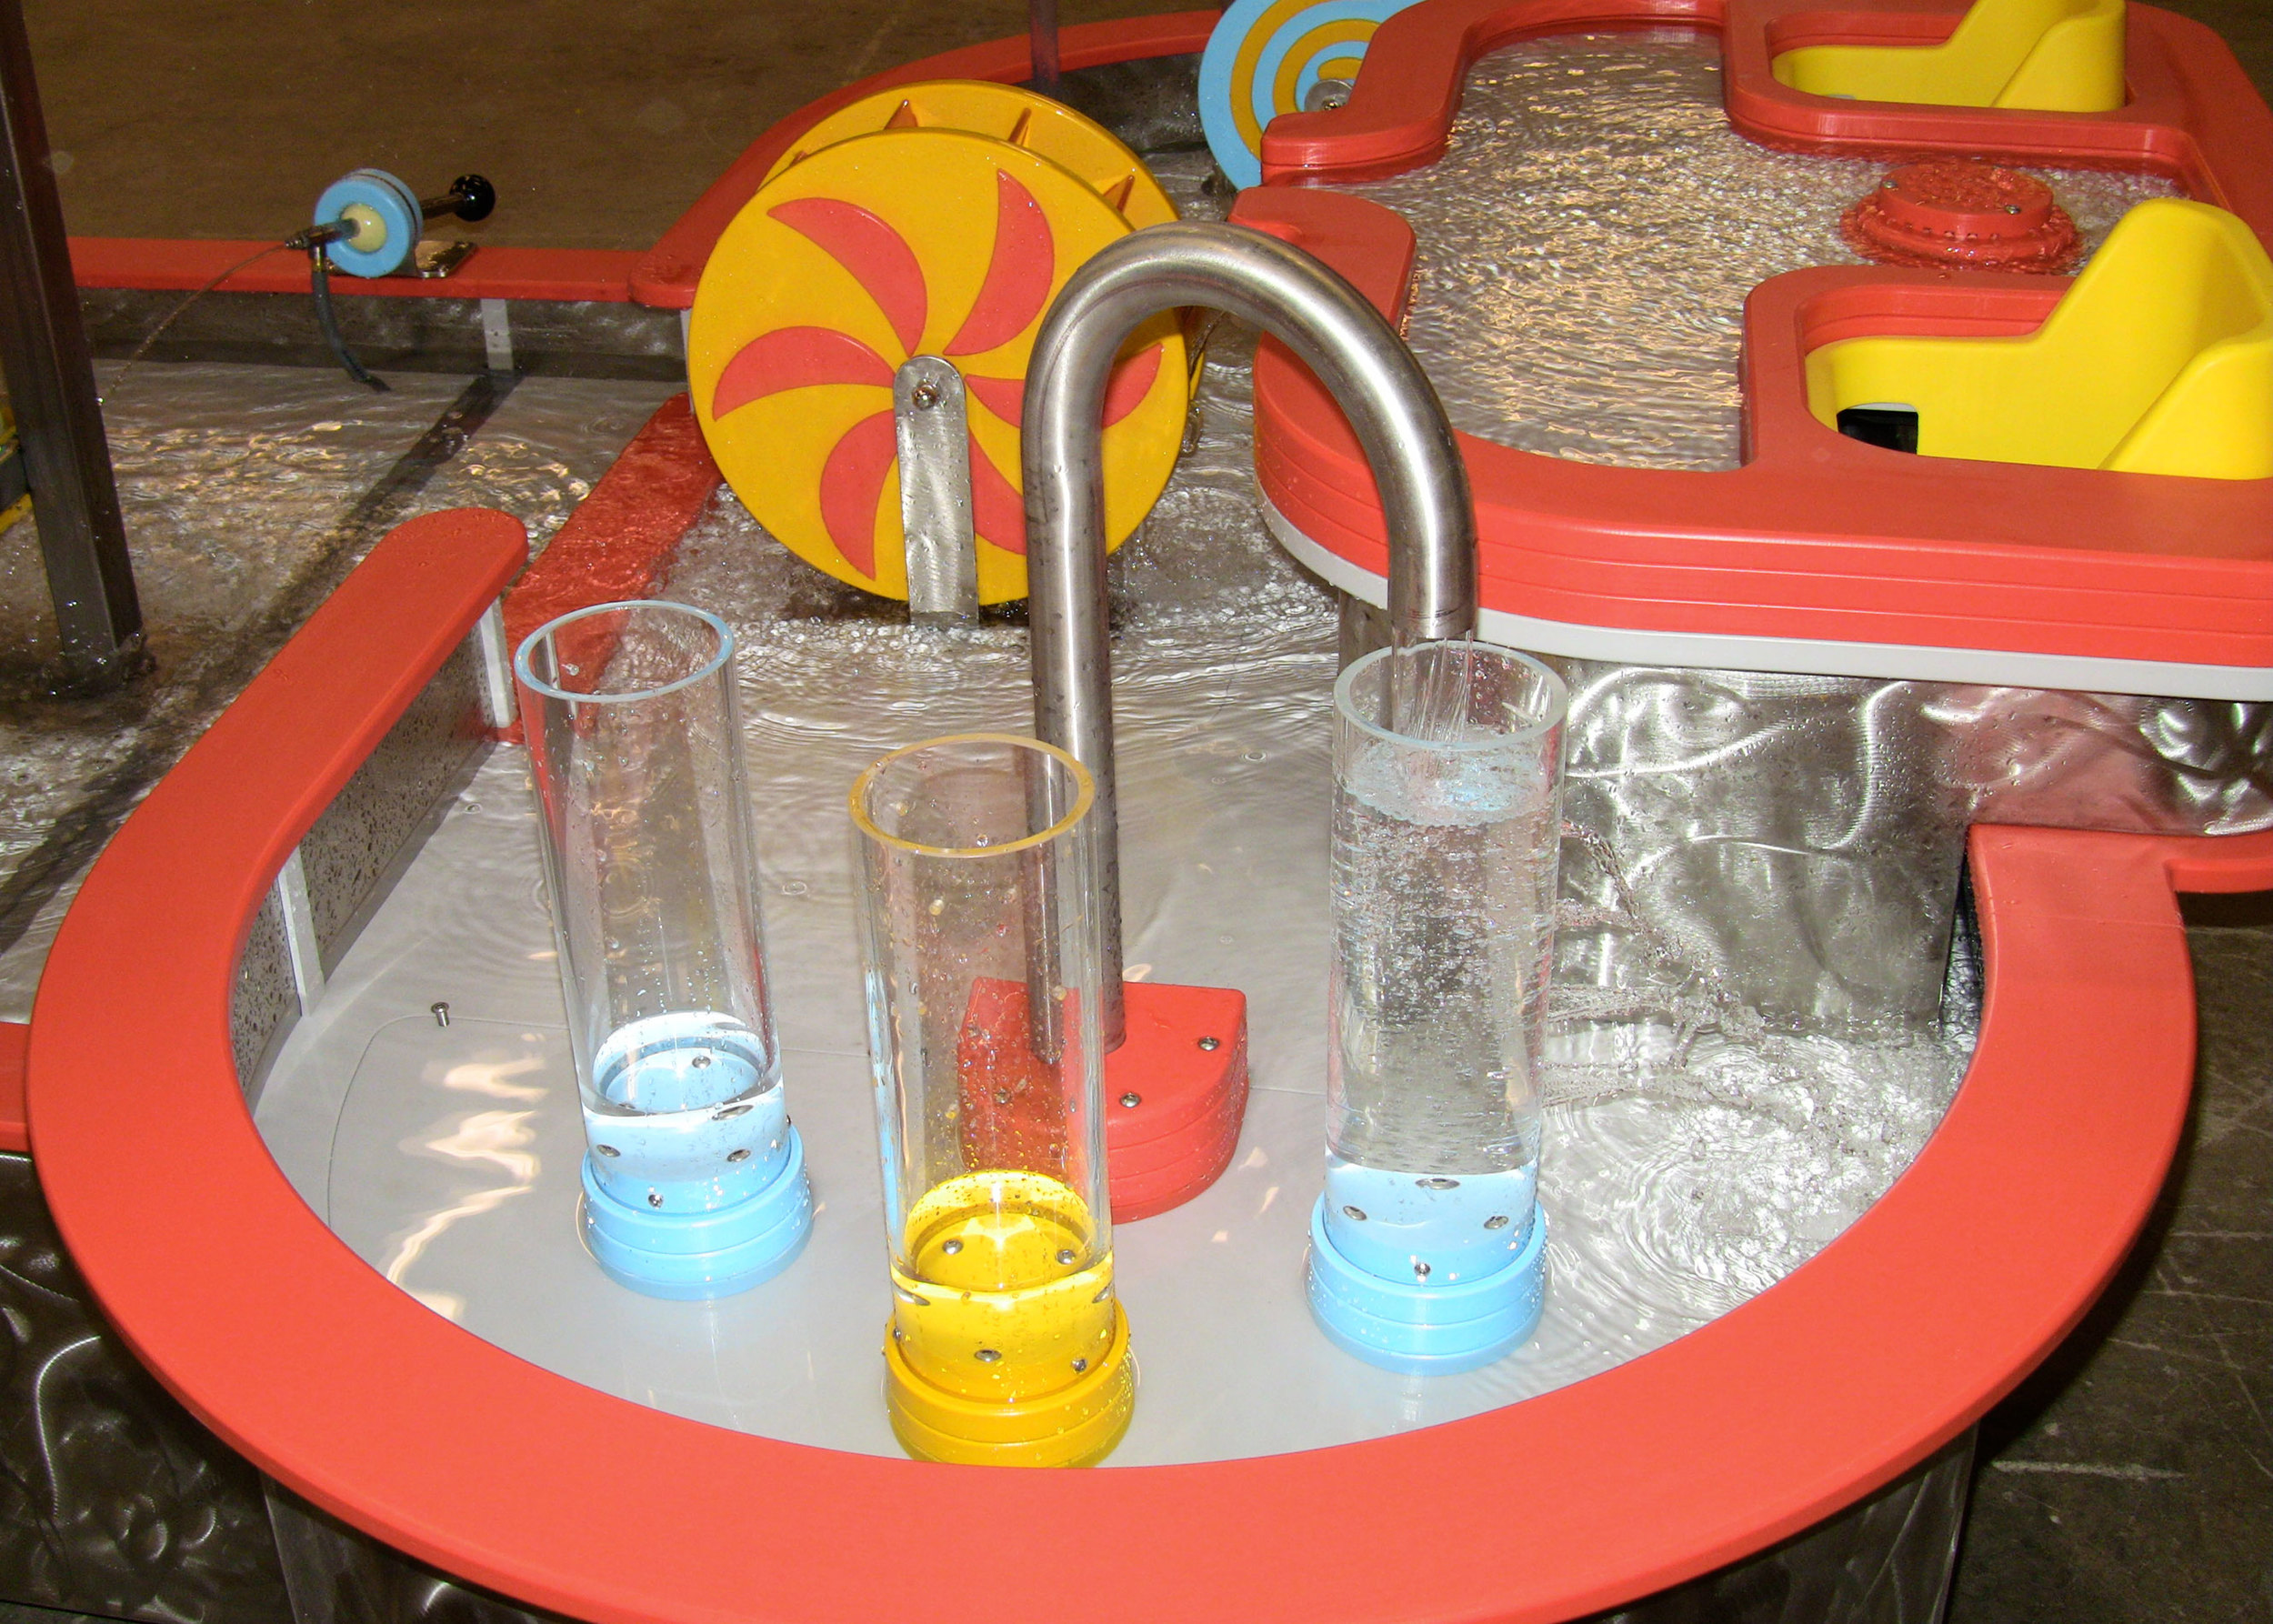 KidScienceWaterTable1.jpg